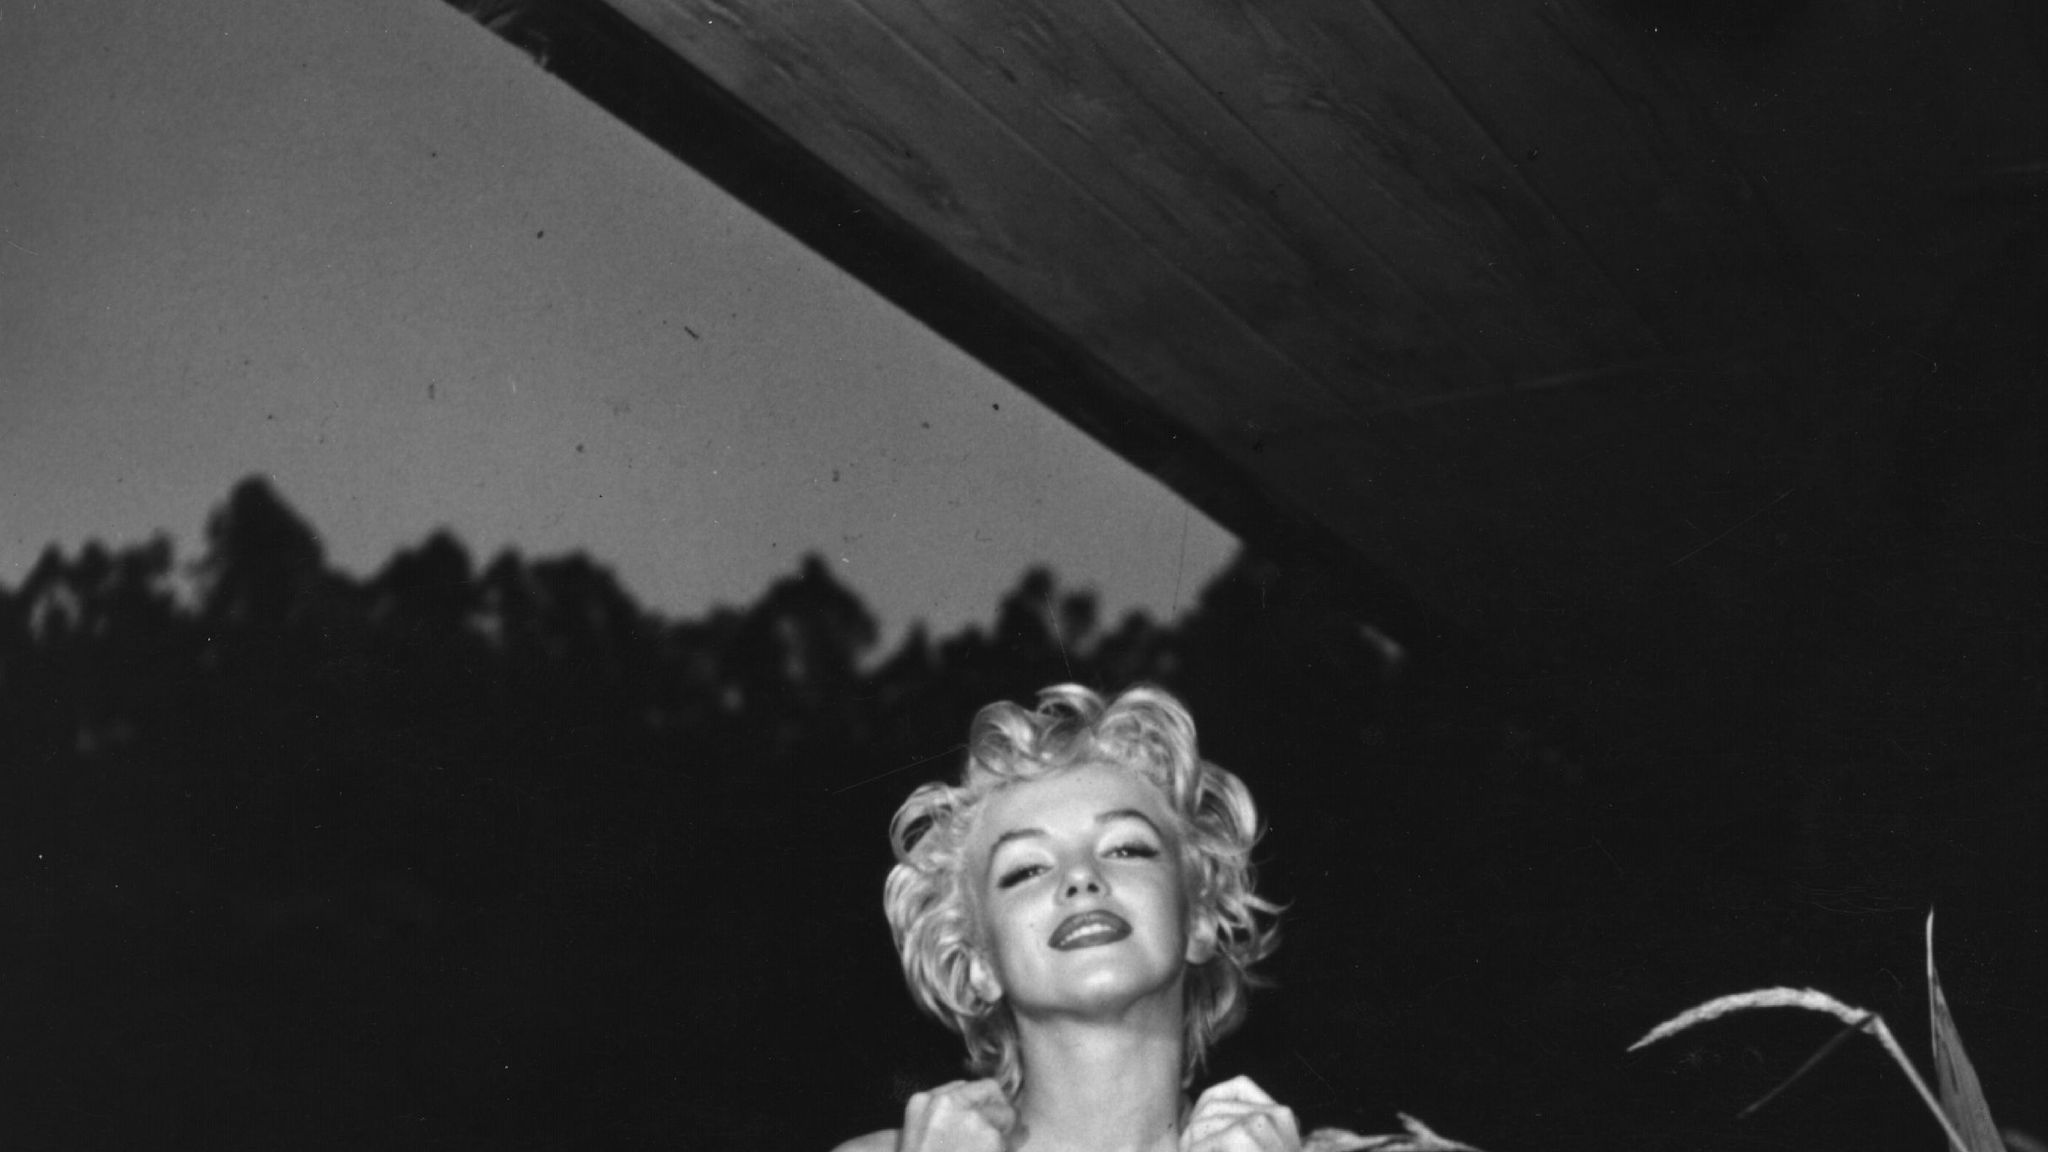 Hollywood film star Marilyn Monroe (Norma Jean Mortenson or Norma Jean Baker